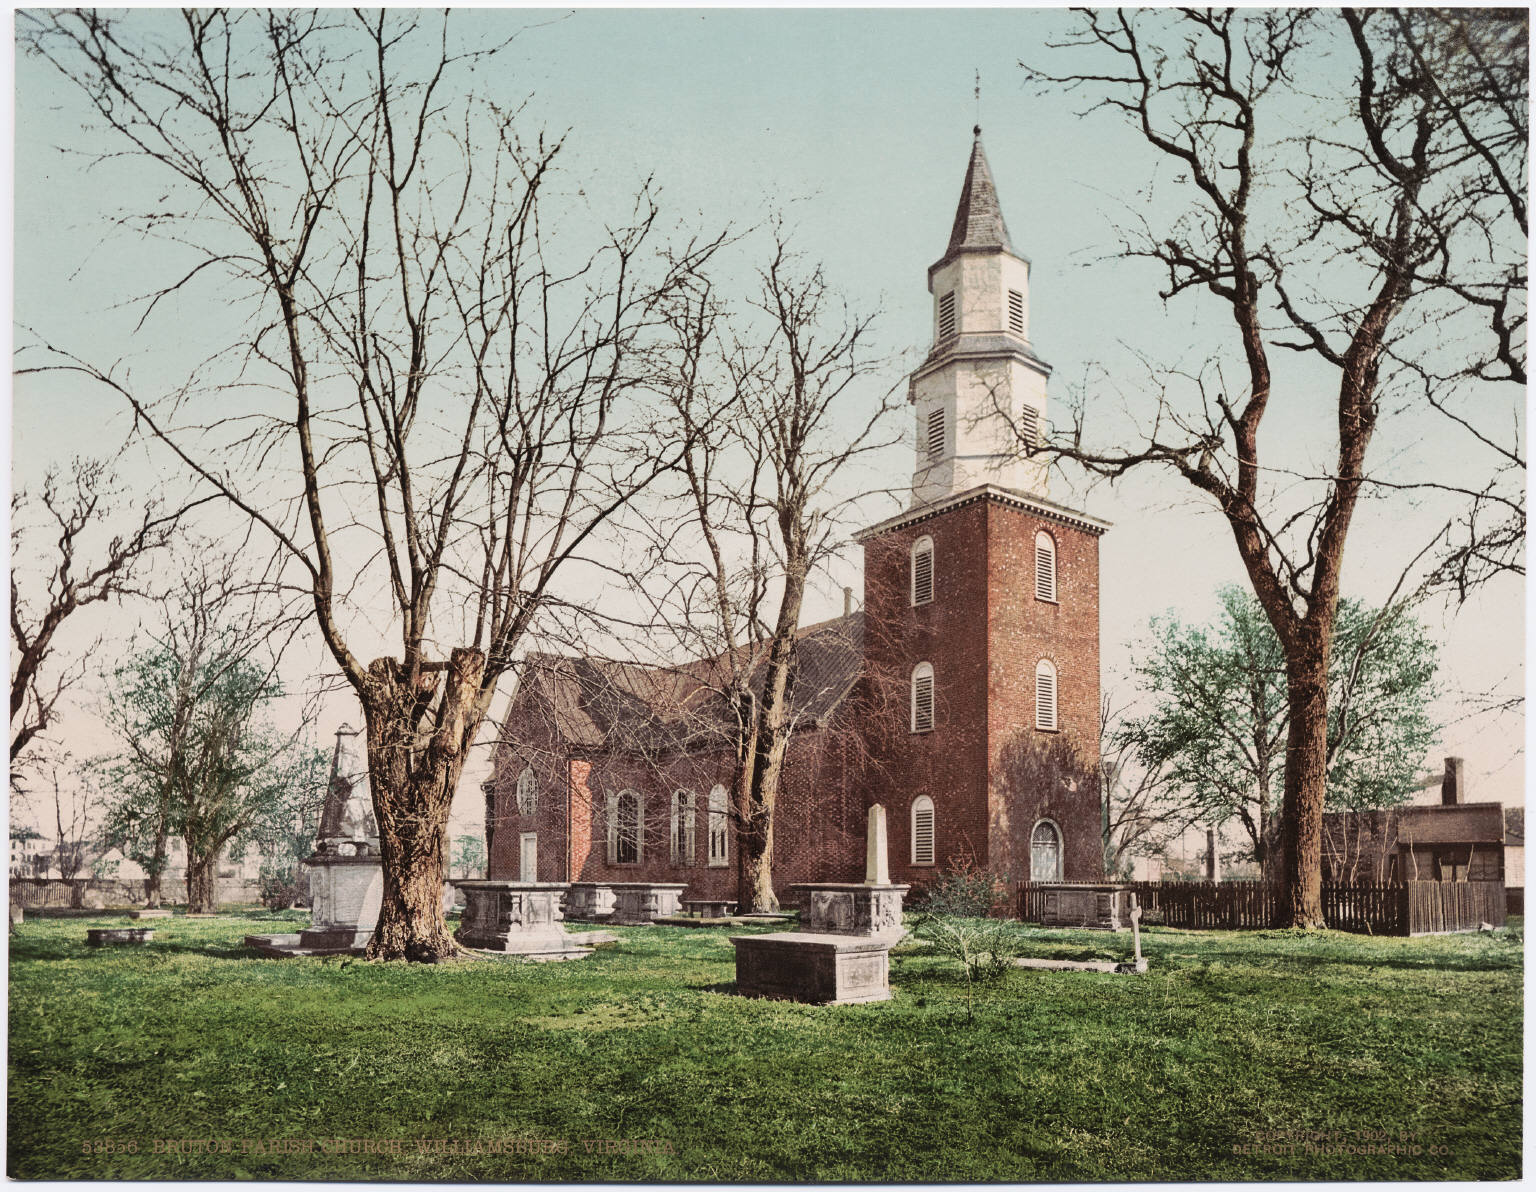 View of Bruton Parish Church, ca. 1902. Image by Unknown - Beinecke Rare Book & Manuscript Library, Yale University, Public Domain